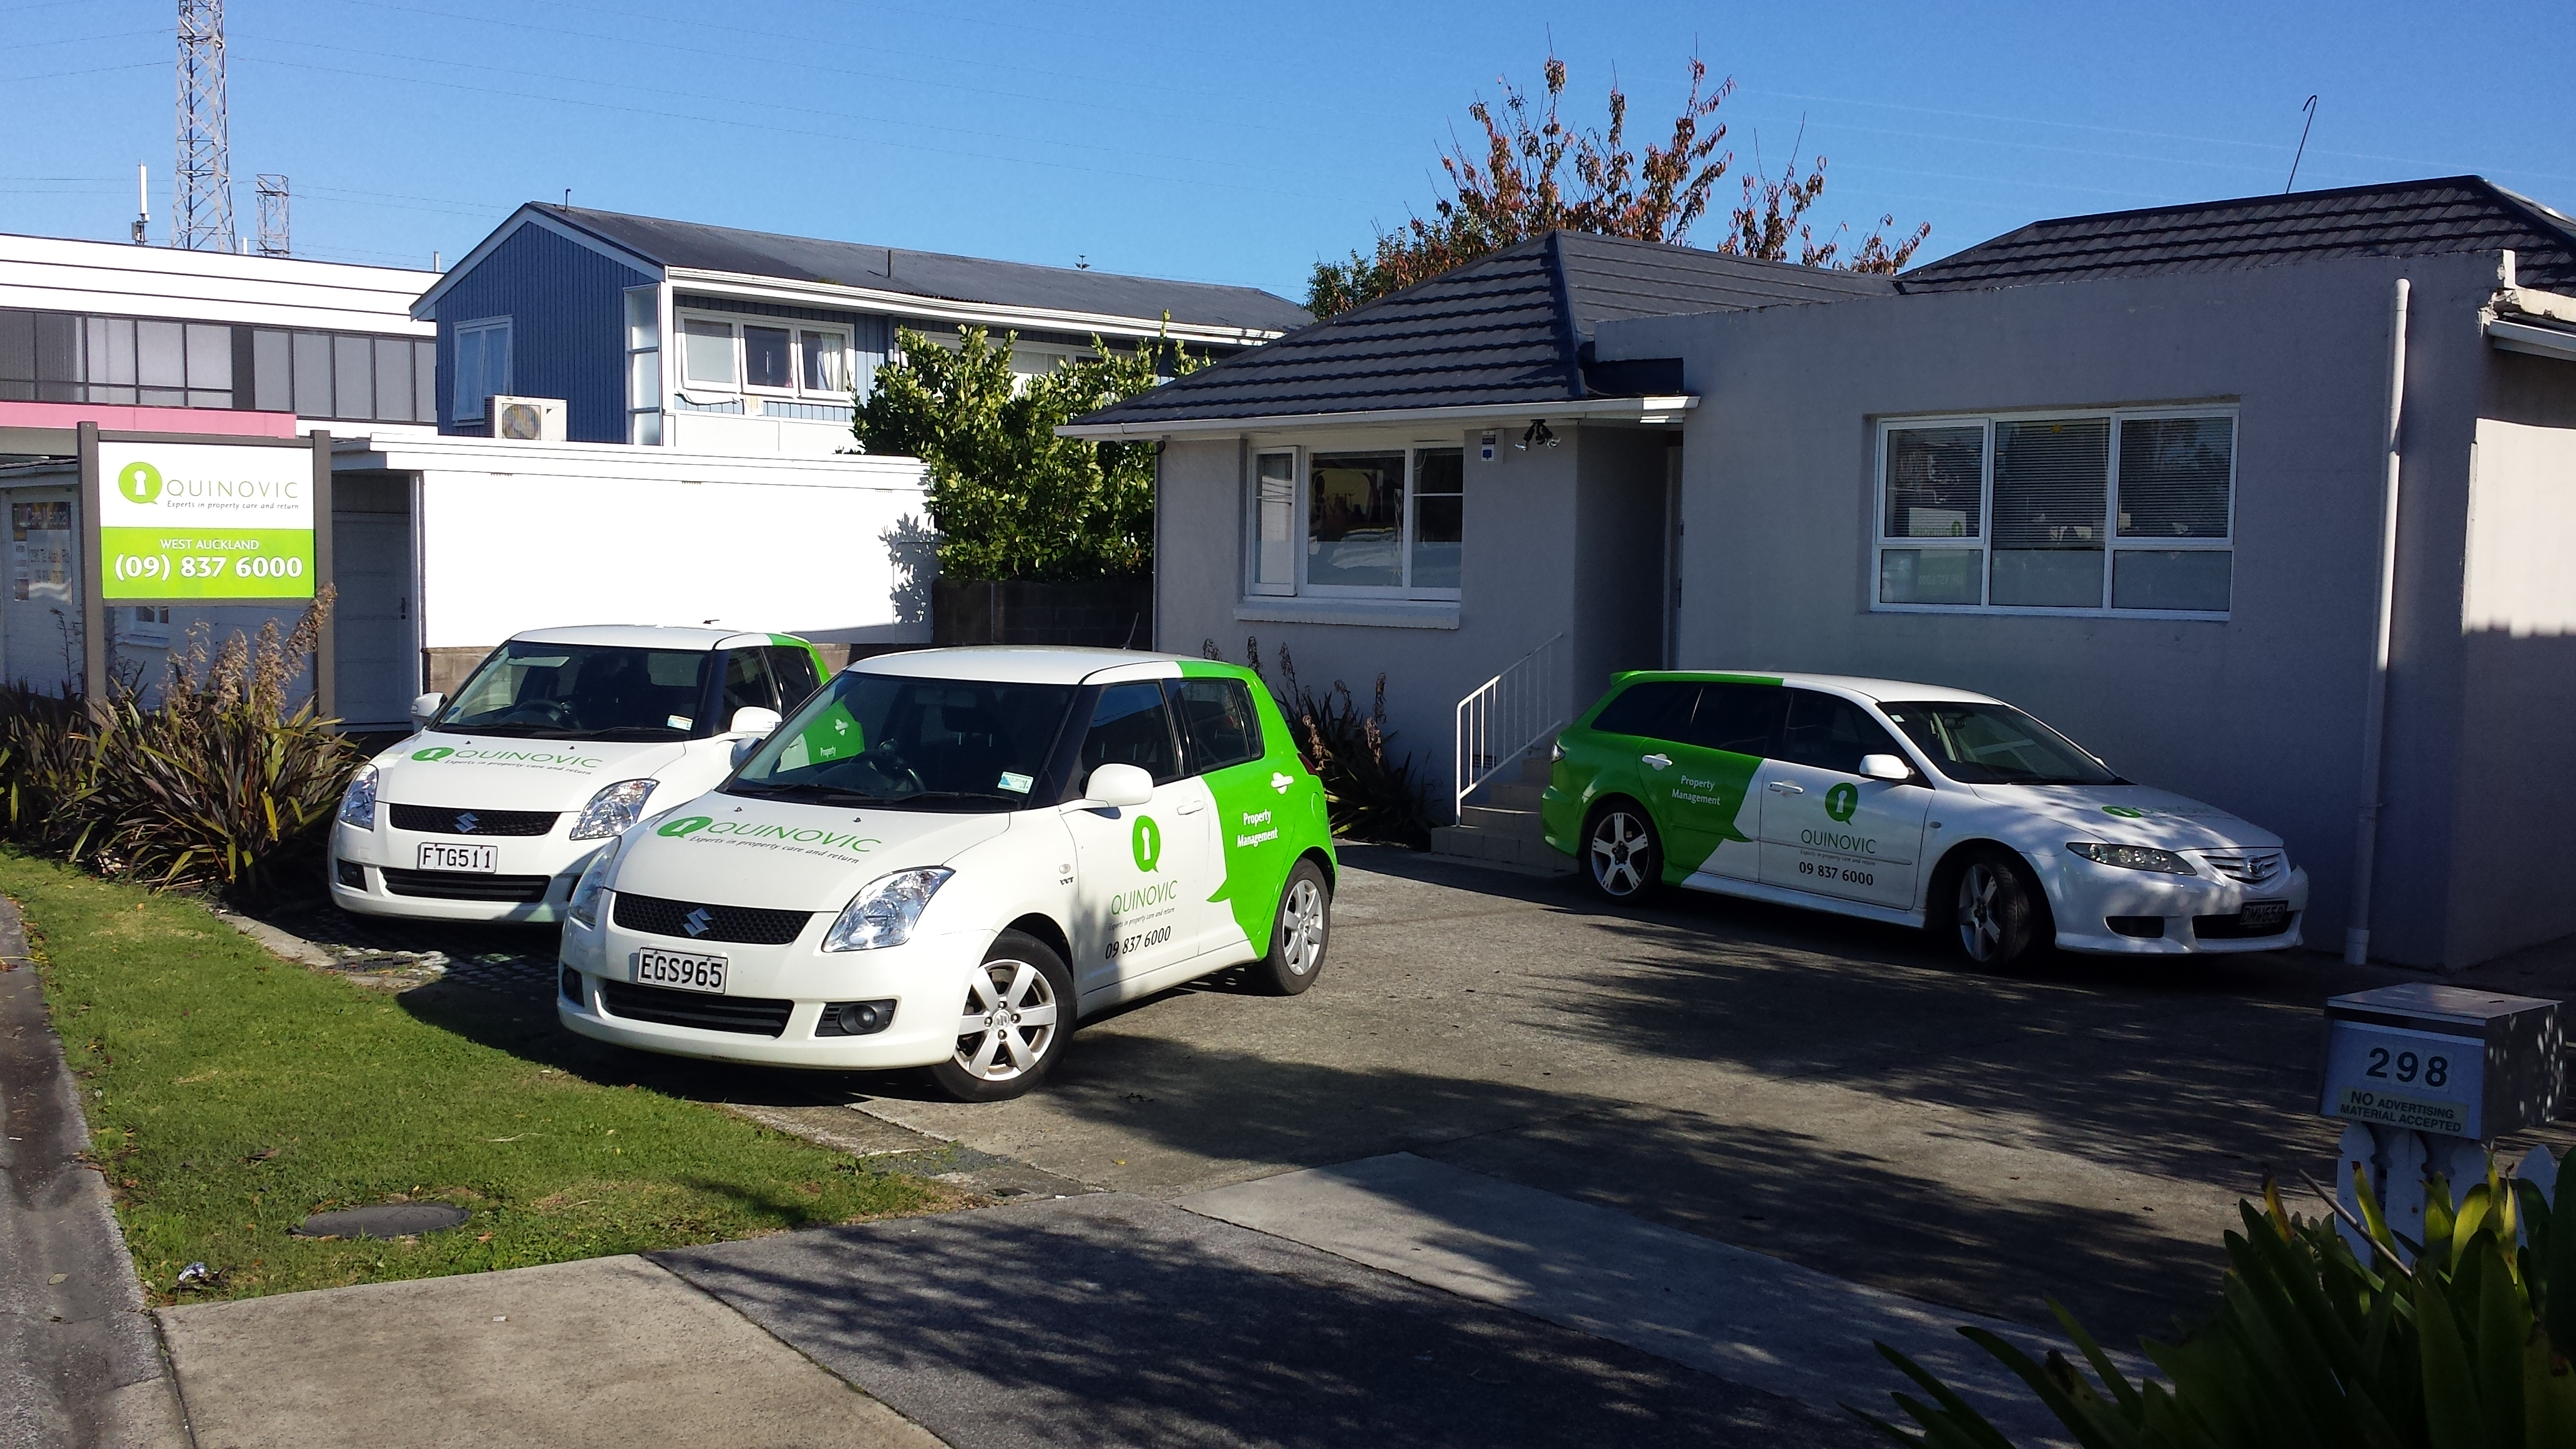 Quinovic Property Management - Millwater, Auckland